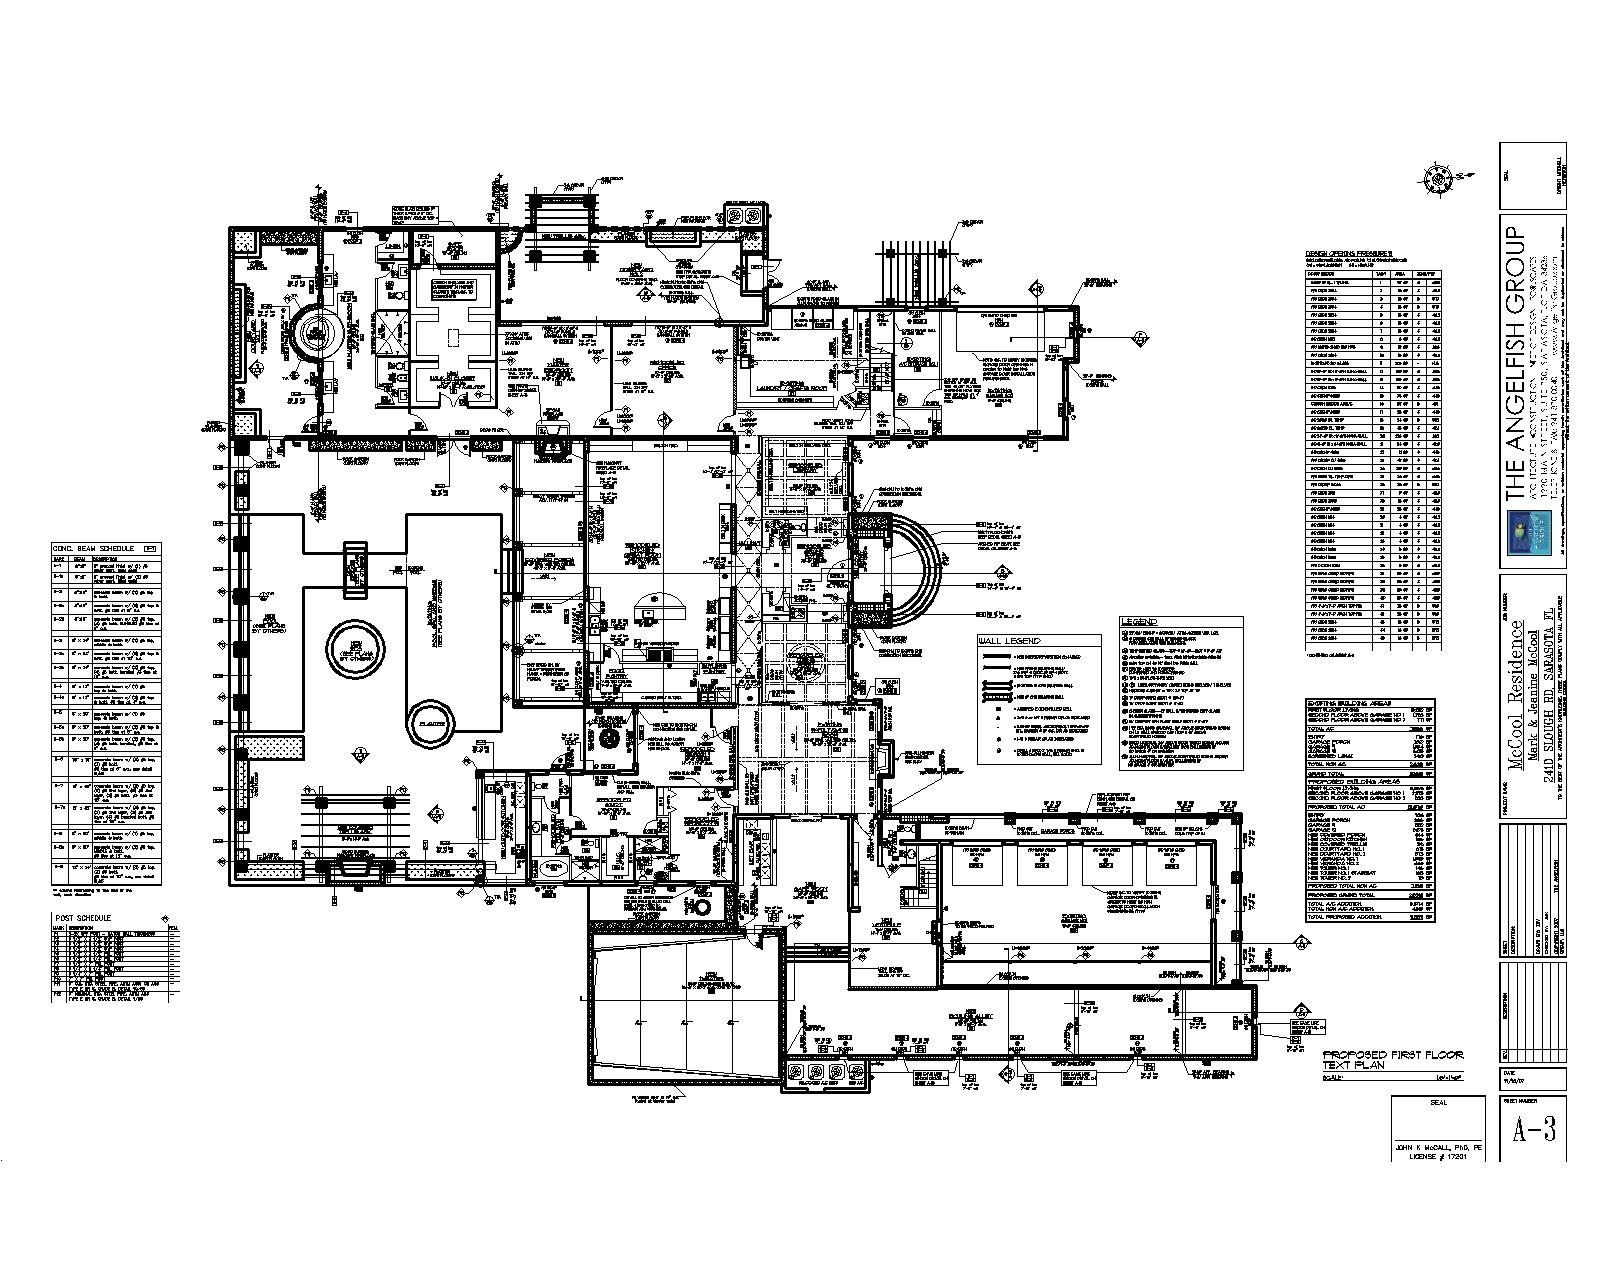 12000 Sq Ft House Plans http://starttofinishdrafting.com/start-to-finish-drafting-plans-srv-details.php?srvitemid=31&pid=95